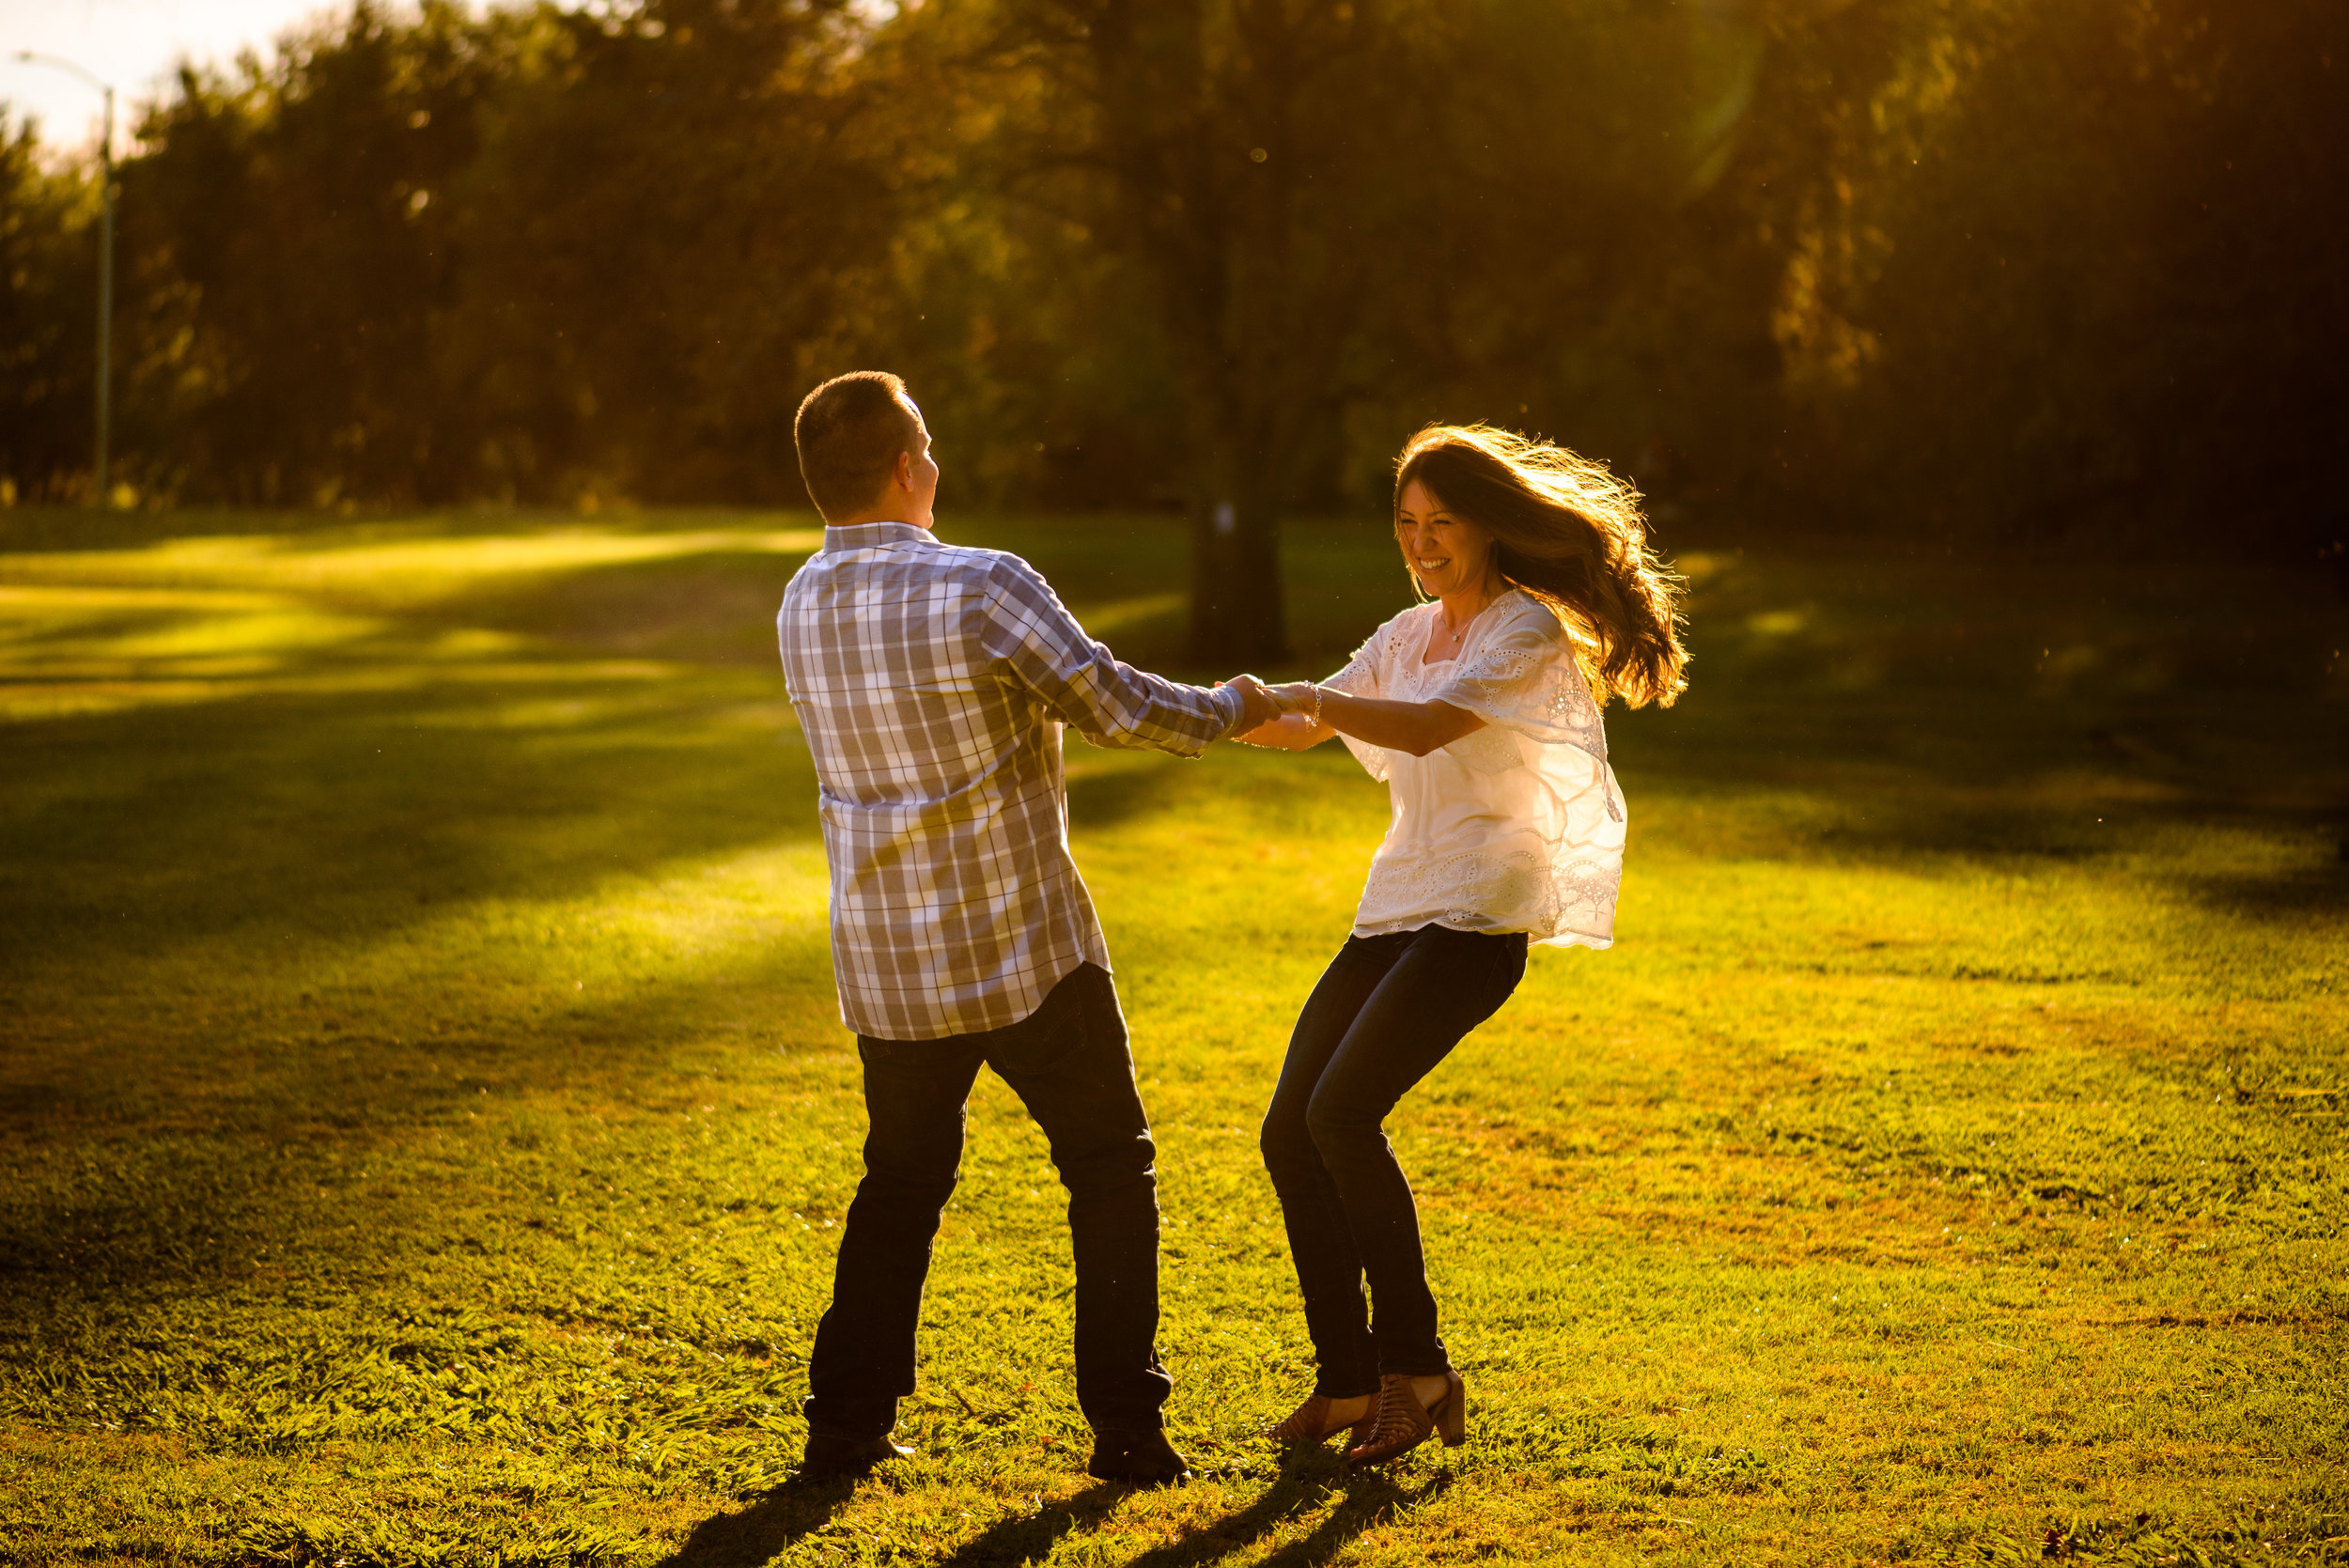 nicole-luke-004-sacramento-engagement-wedding-photographer-katherine-nicole-photography.JPG